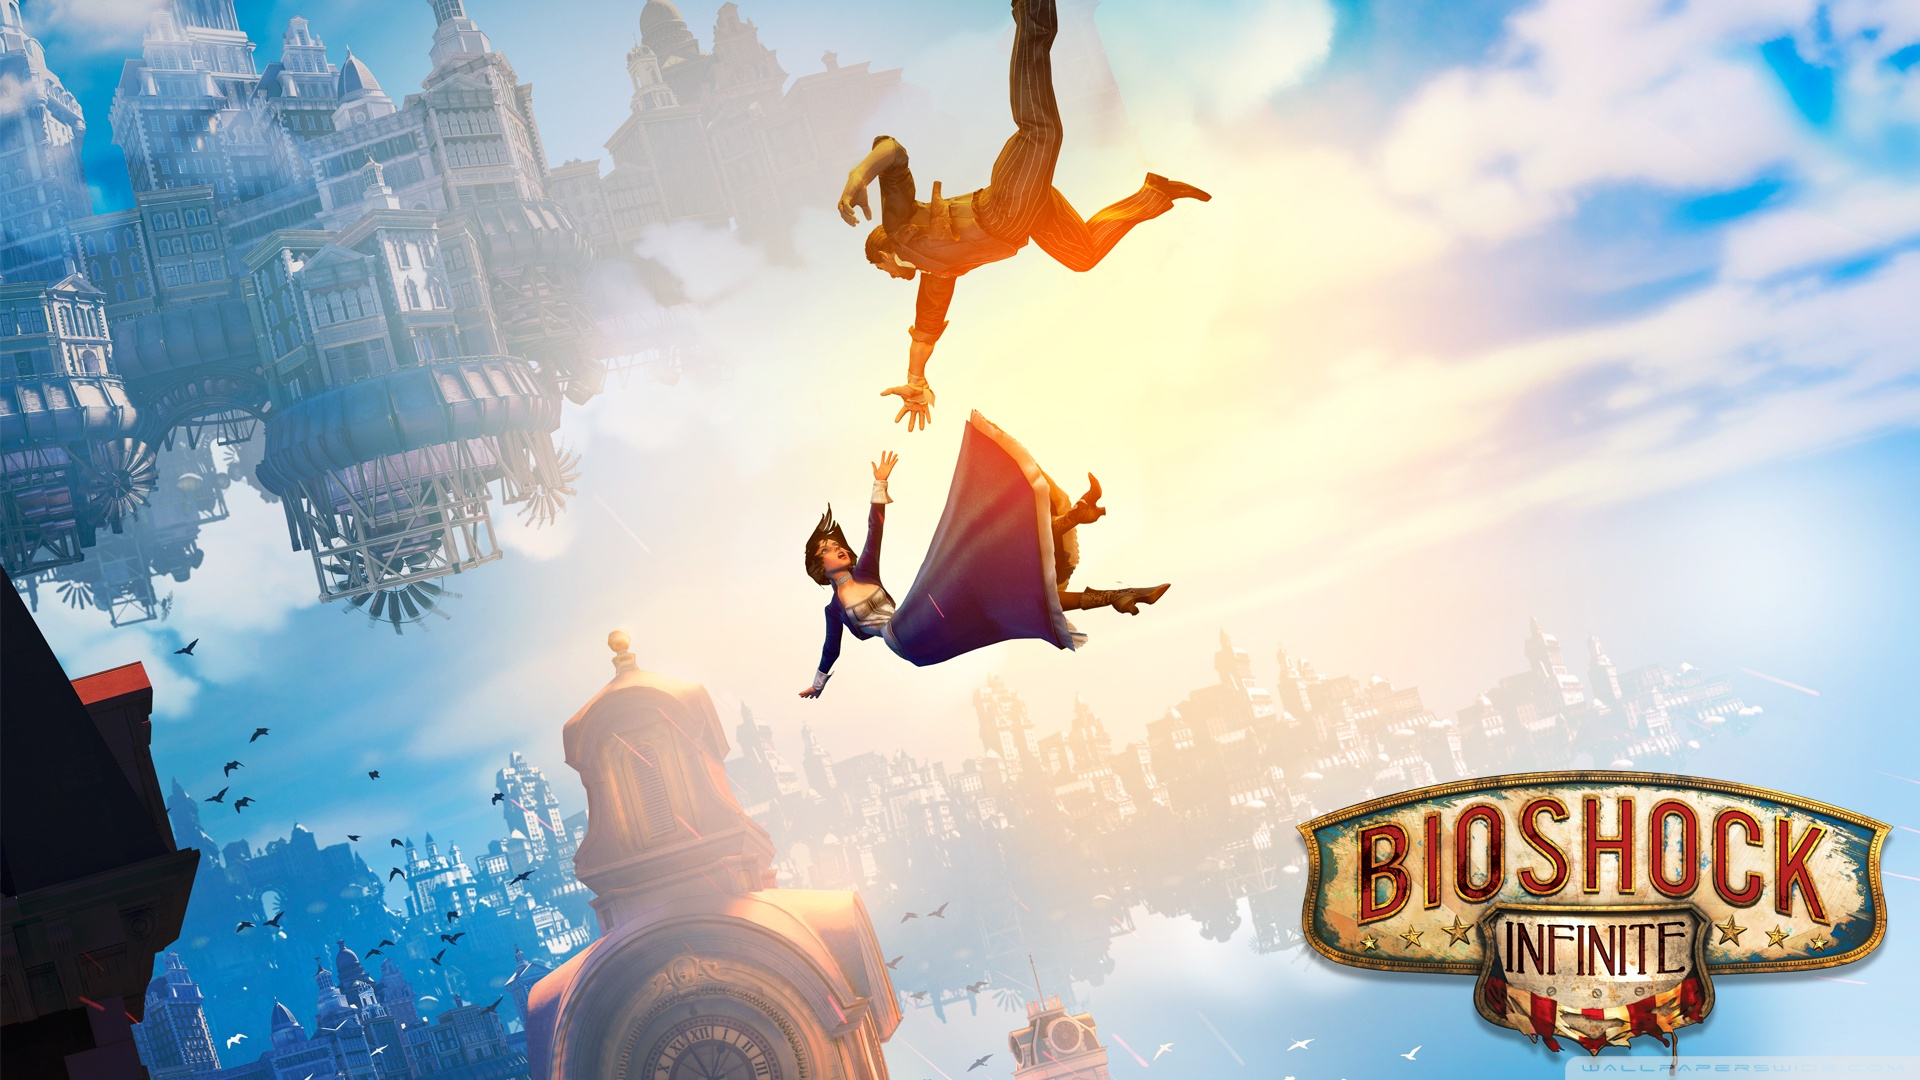 BioShock Infinite Falling 4K HD Desktop Wallpaper for 4K Ultra 1920x1080